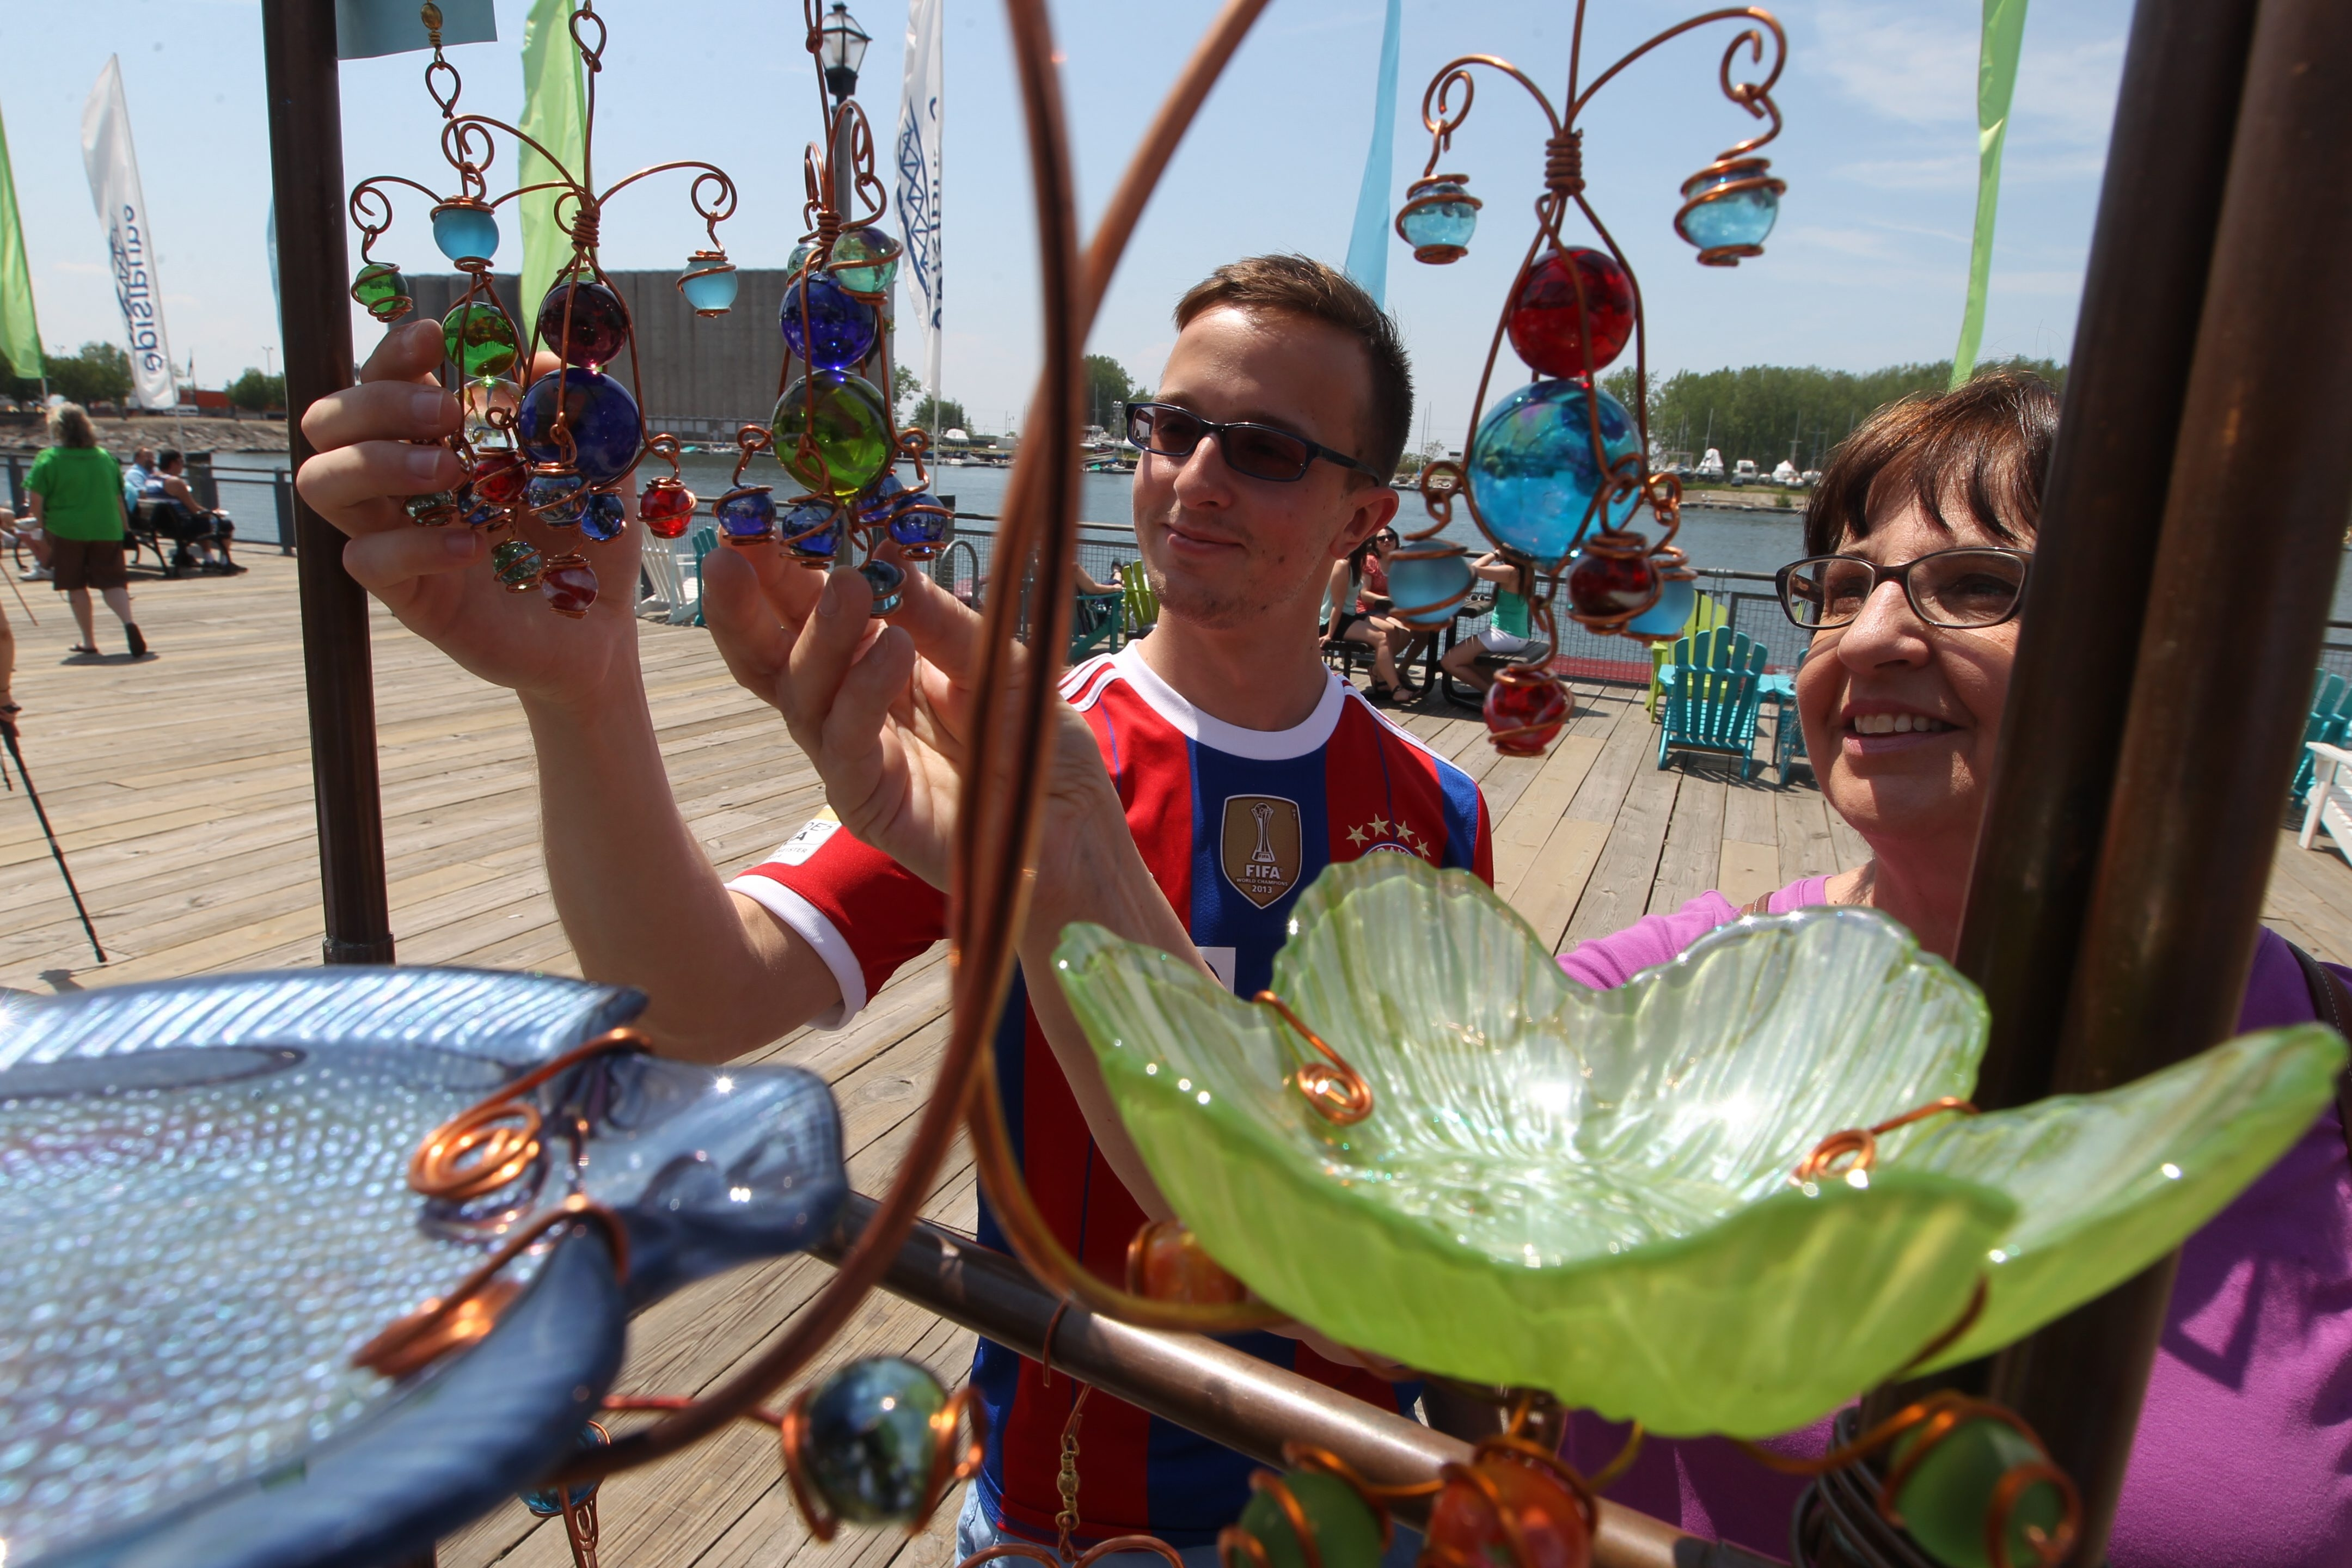 Adam Majewski and his mother, Linda Majewski, look at sun catchers Saturday at Creative Copper and Wire at the kickoff of the Artisan Market season on the boardwalk at Canalside.